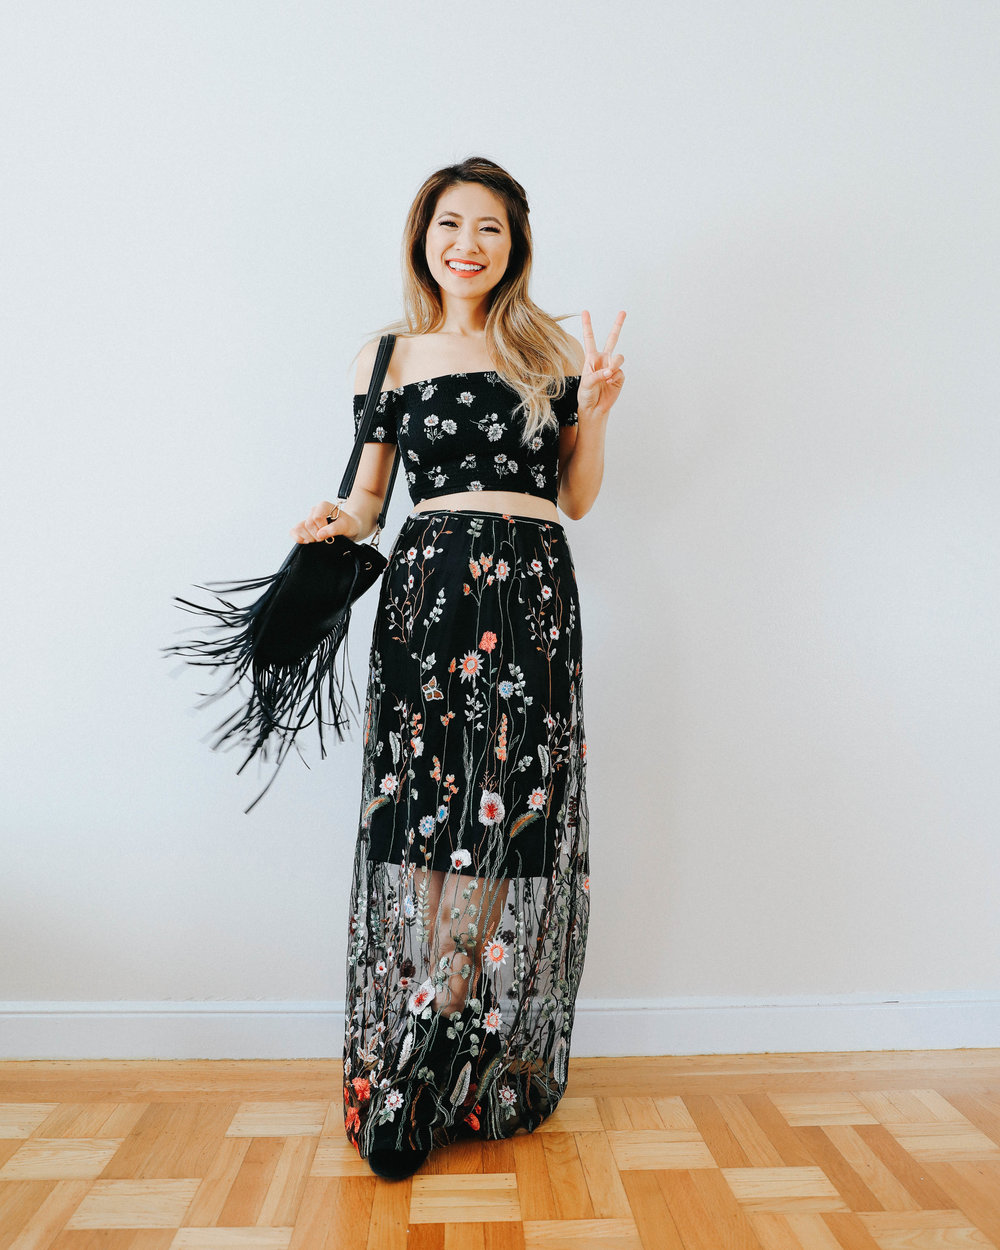 FashionbyAlly-Music-Festival-Outfits1.jpg